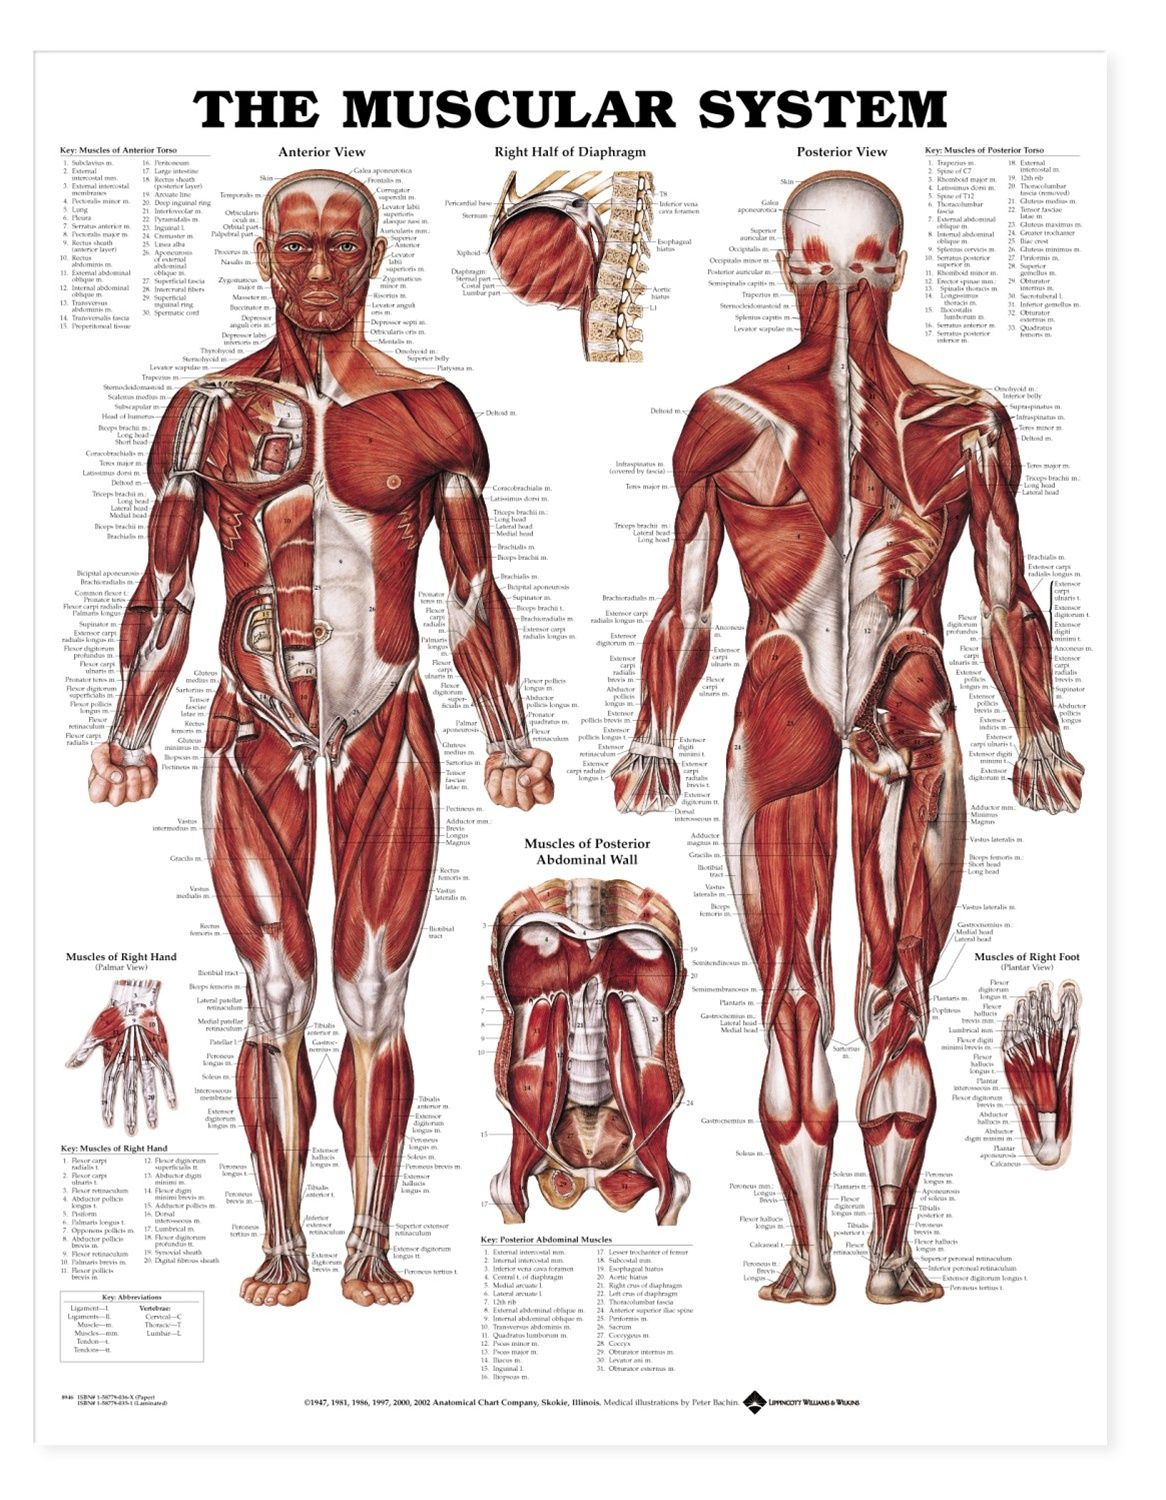 the muscular system - deep layers, front laminated anatomy chart, Muscles